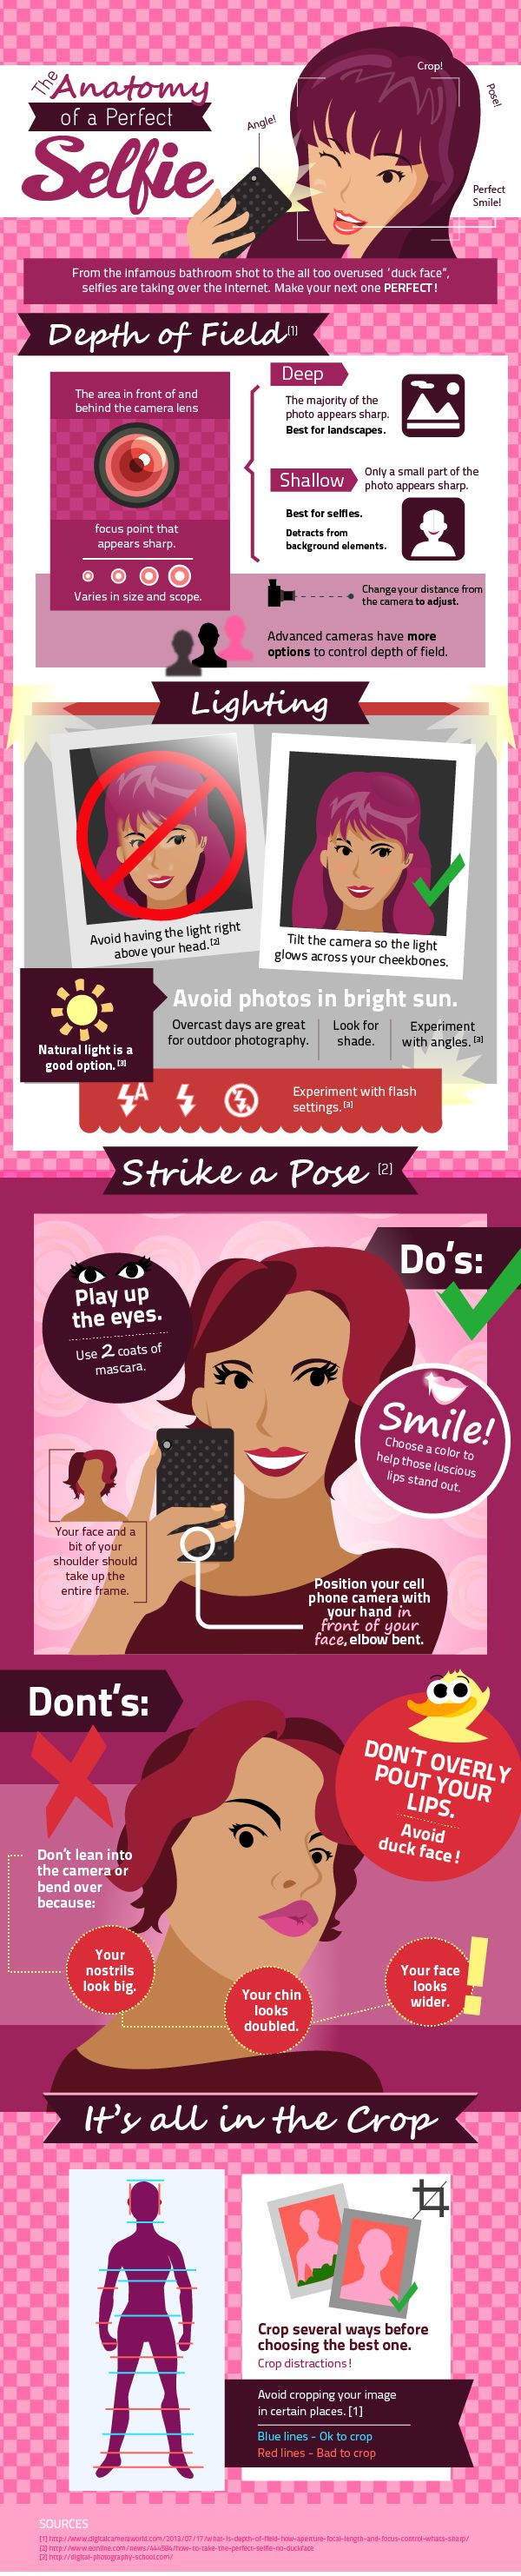 So, if you don't have a good seflie (or a collection of good selfies), you should check out today's extremely relevant infographic, The Anatomy of a Perfect Selfie. It has tips on how to select the proper lighting conditions and how to properly crop photos. Most importantly, it advises you to not puck your lips, because it makes you look duck-ish.